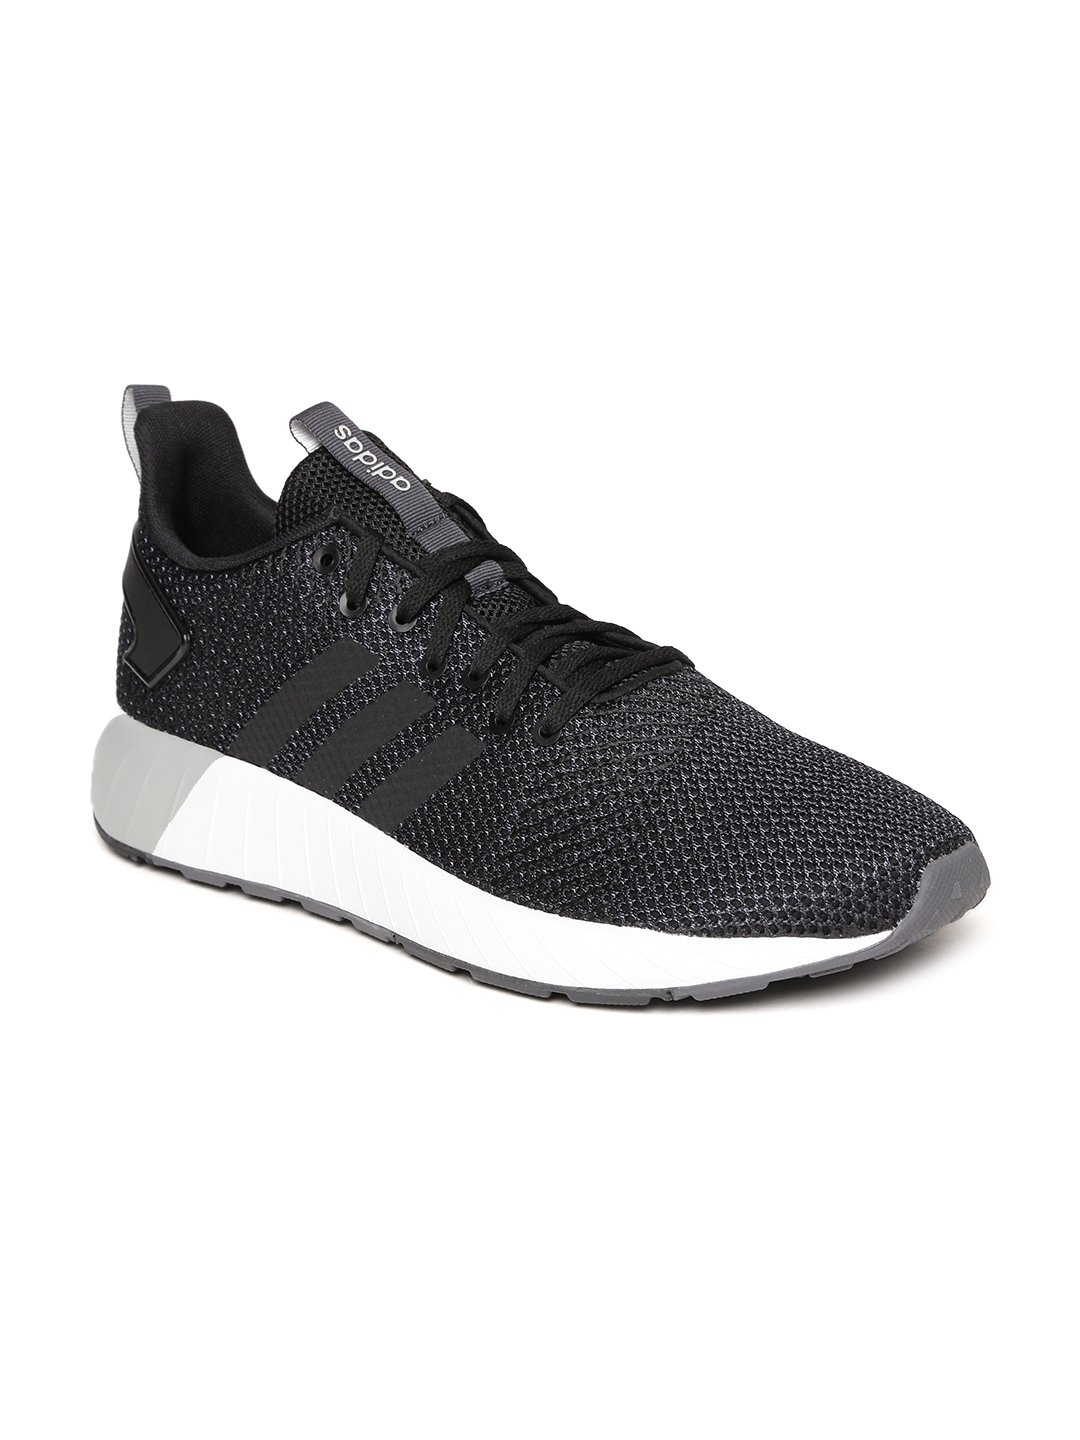 bacaacb5384 Buy ADIDAS Men Black QUESTAR BYD Sneakers - Casual Shoes for Men ...